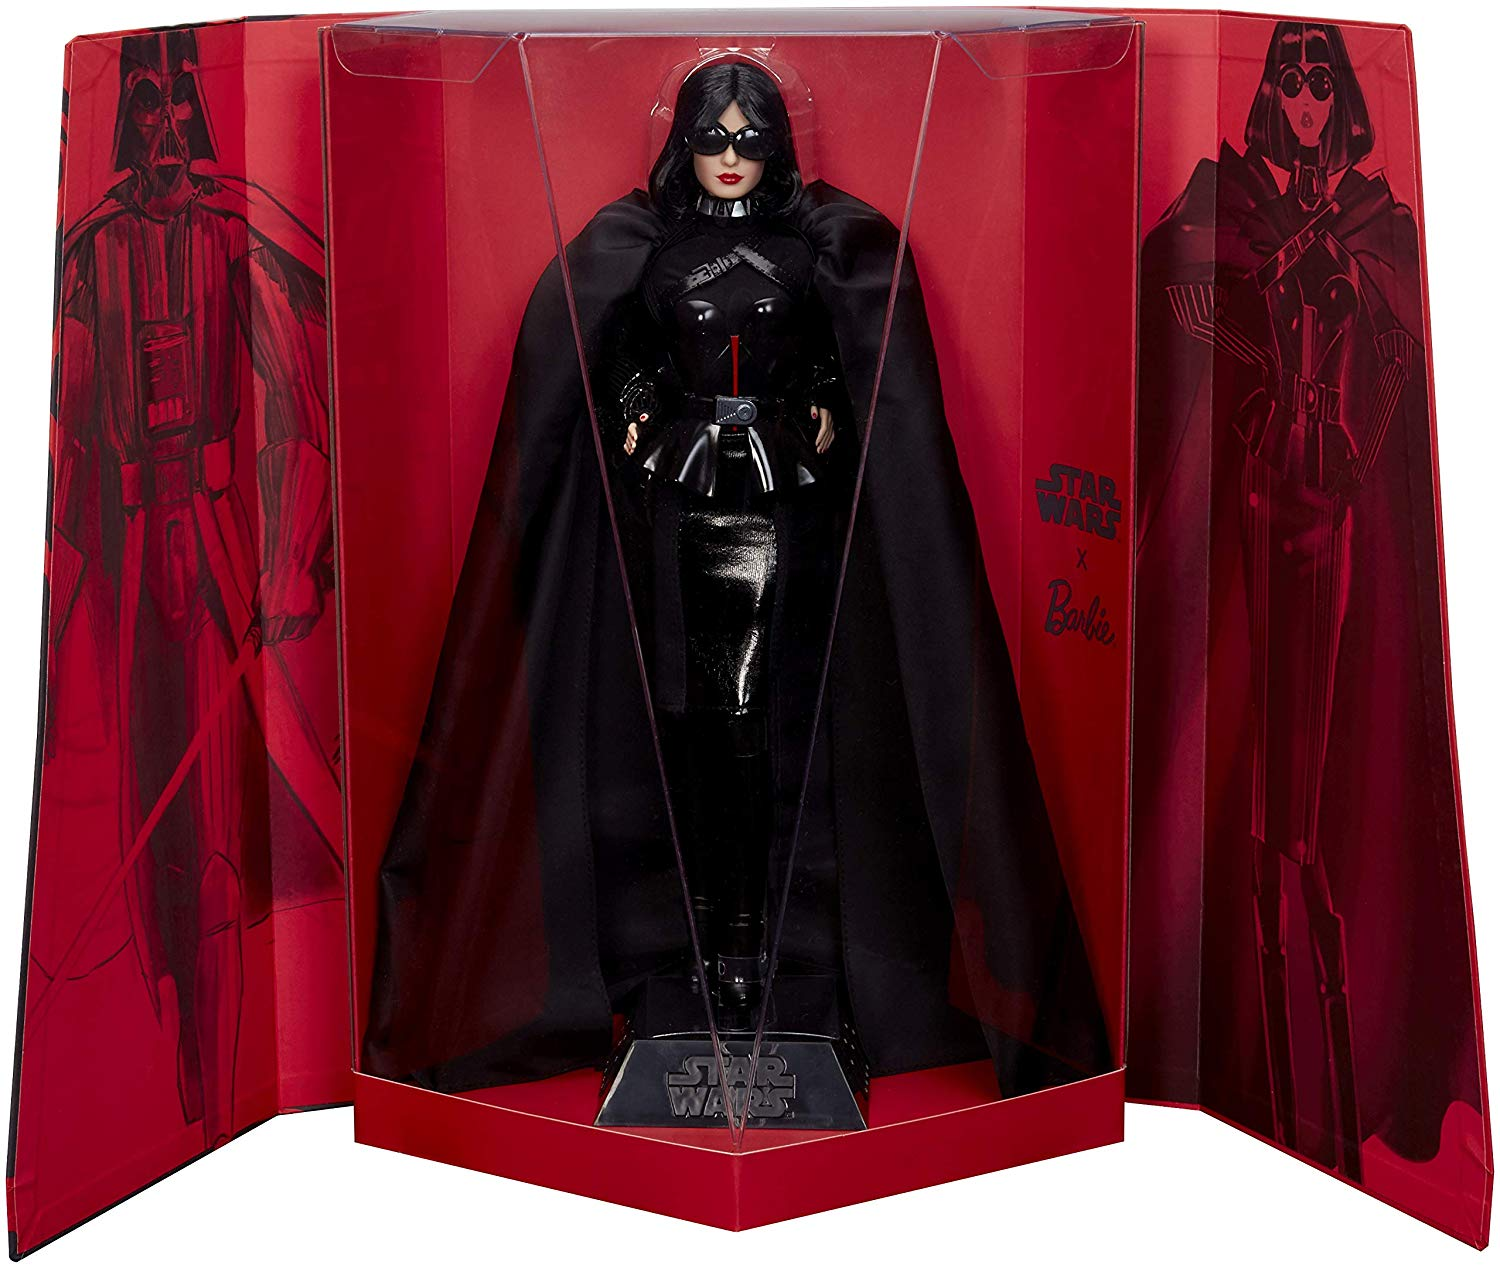 Vader Barbie in box